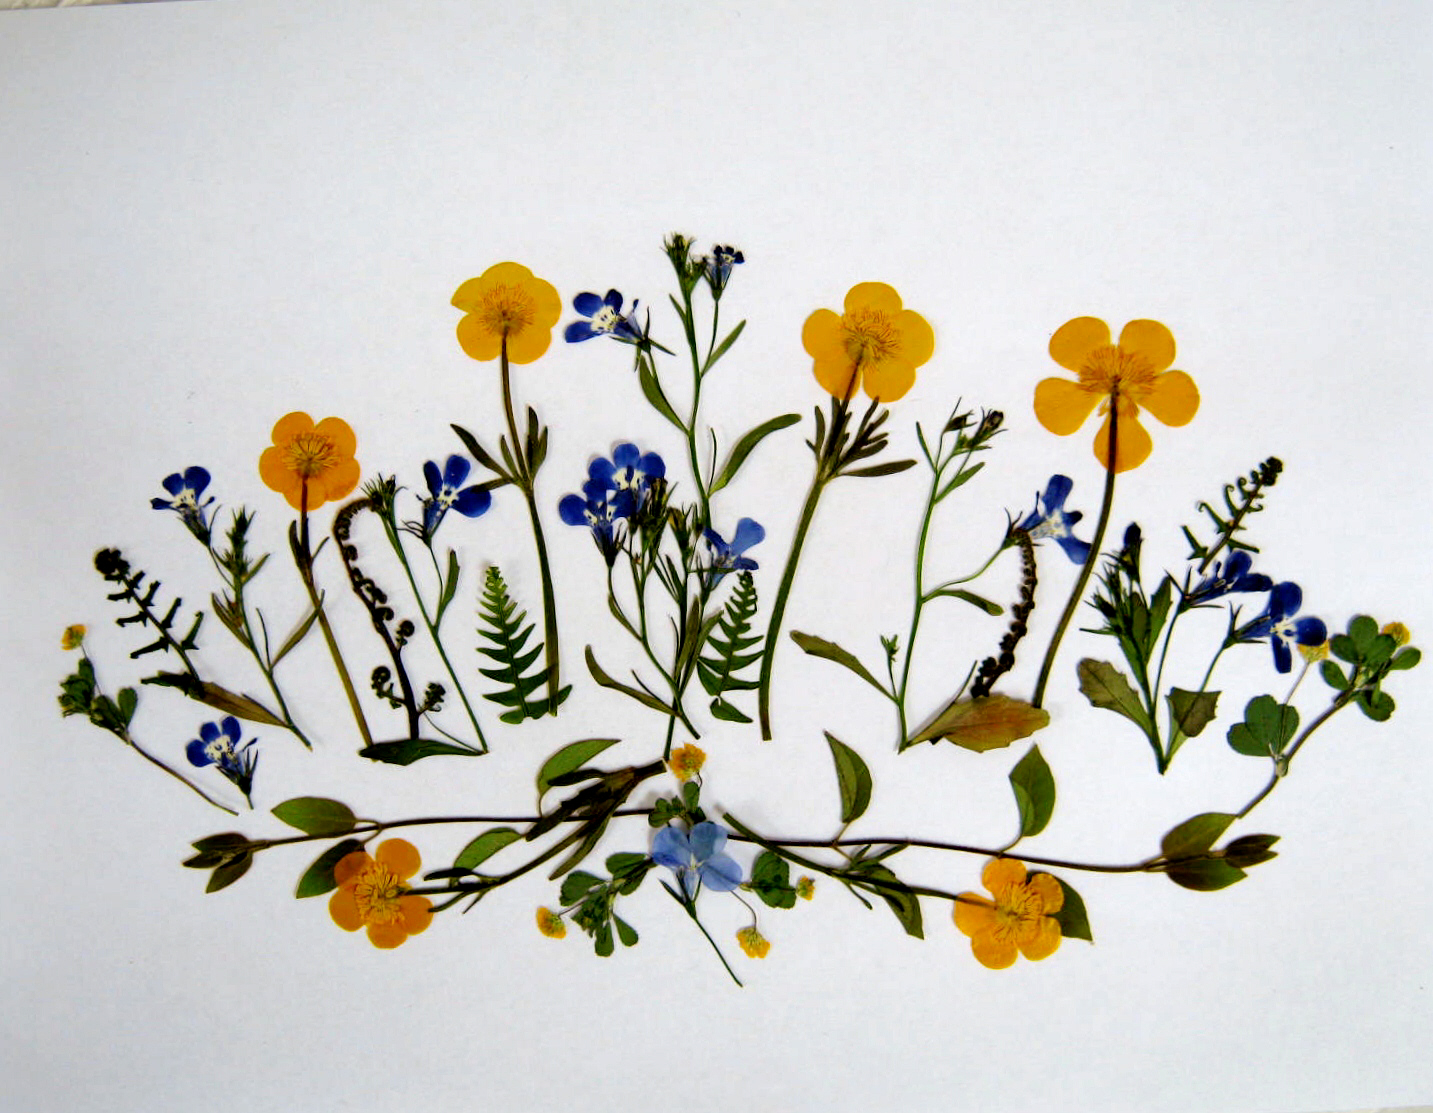 Once your first coat of resin has dried, examine your case to make sure all  the flowers have been properly coated. If needed, add a second coat of  resin.